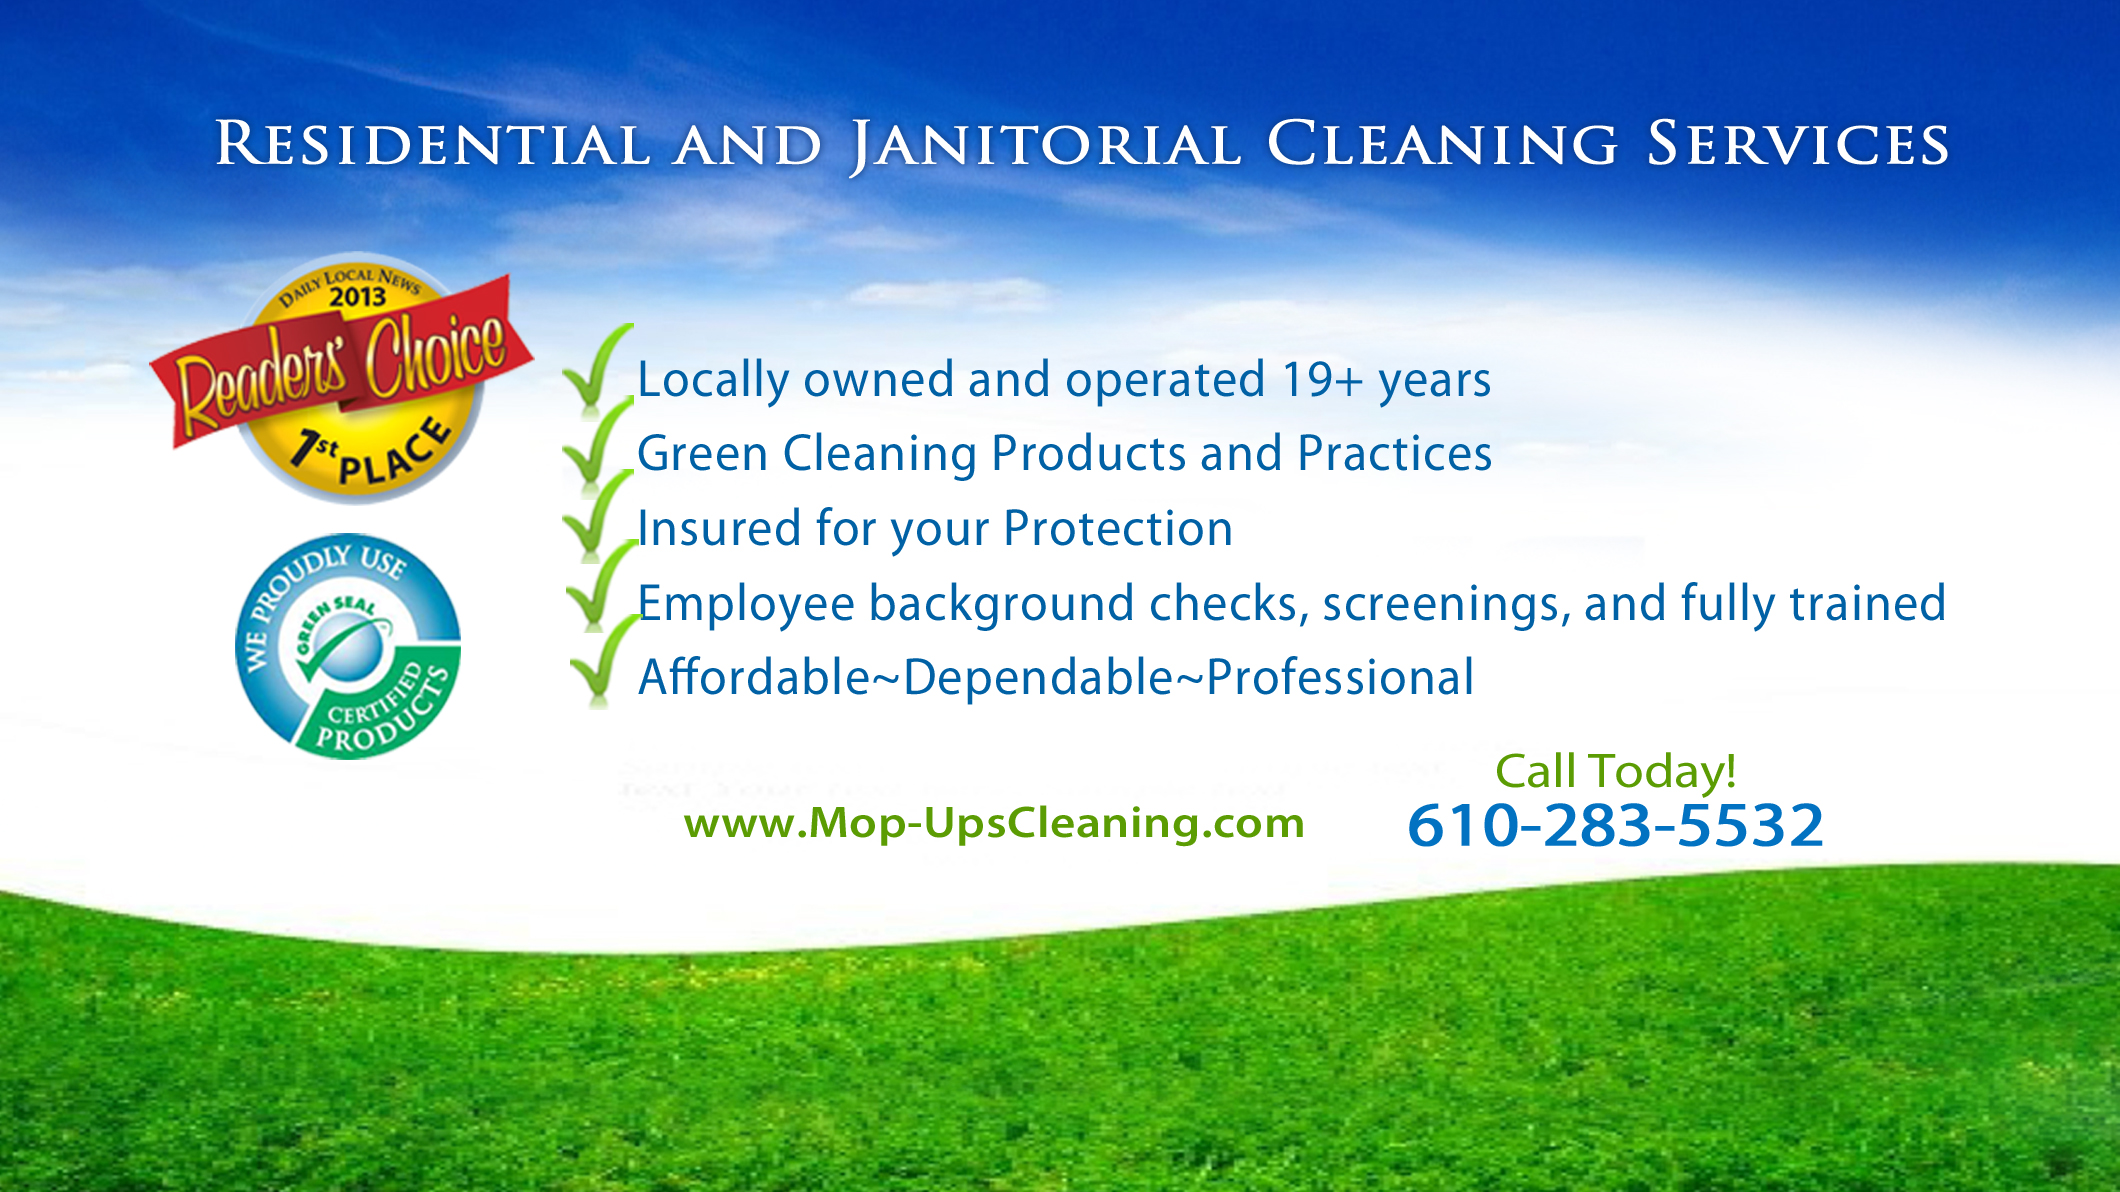 Mop-Ups Cleaning Sevices